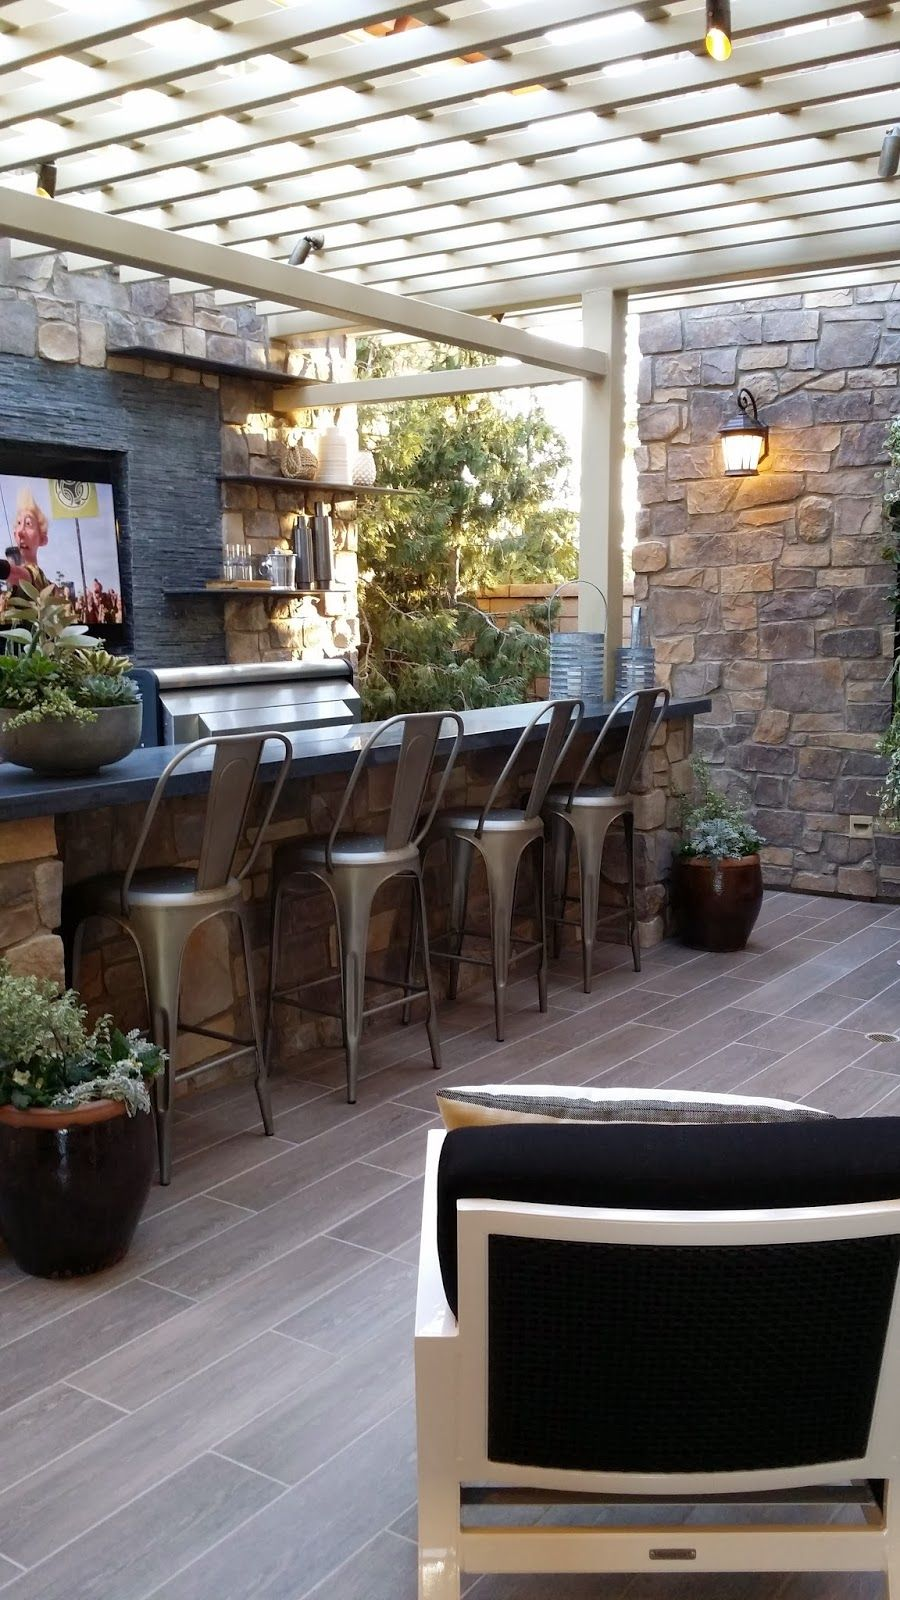 Tg interiors model homes in orange county and shopping outdoor bars outdoor bar and